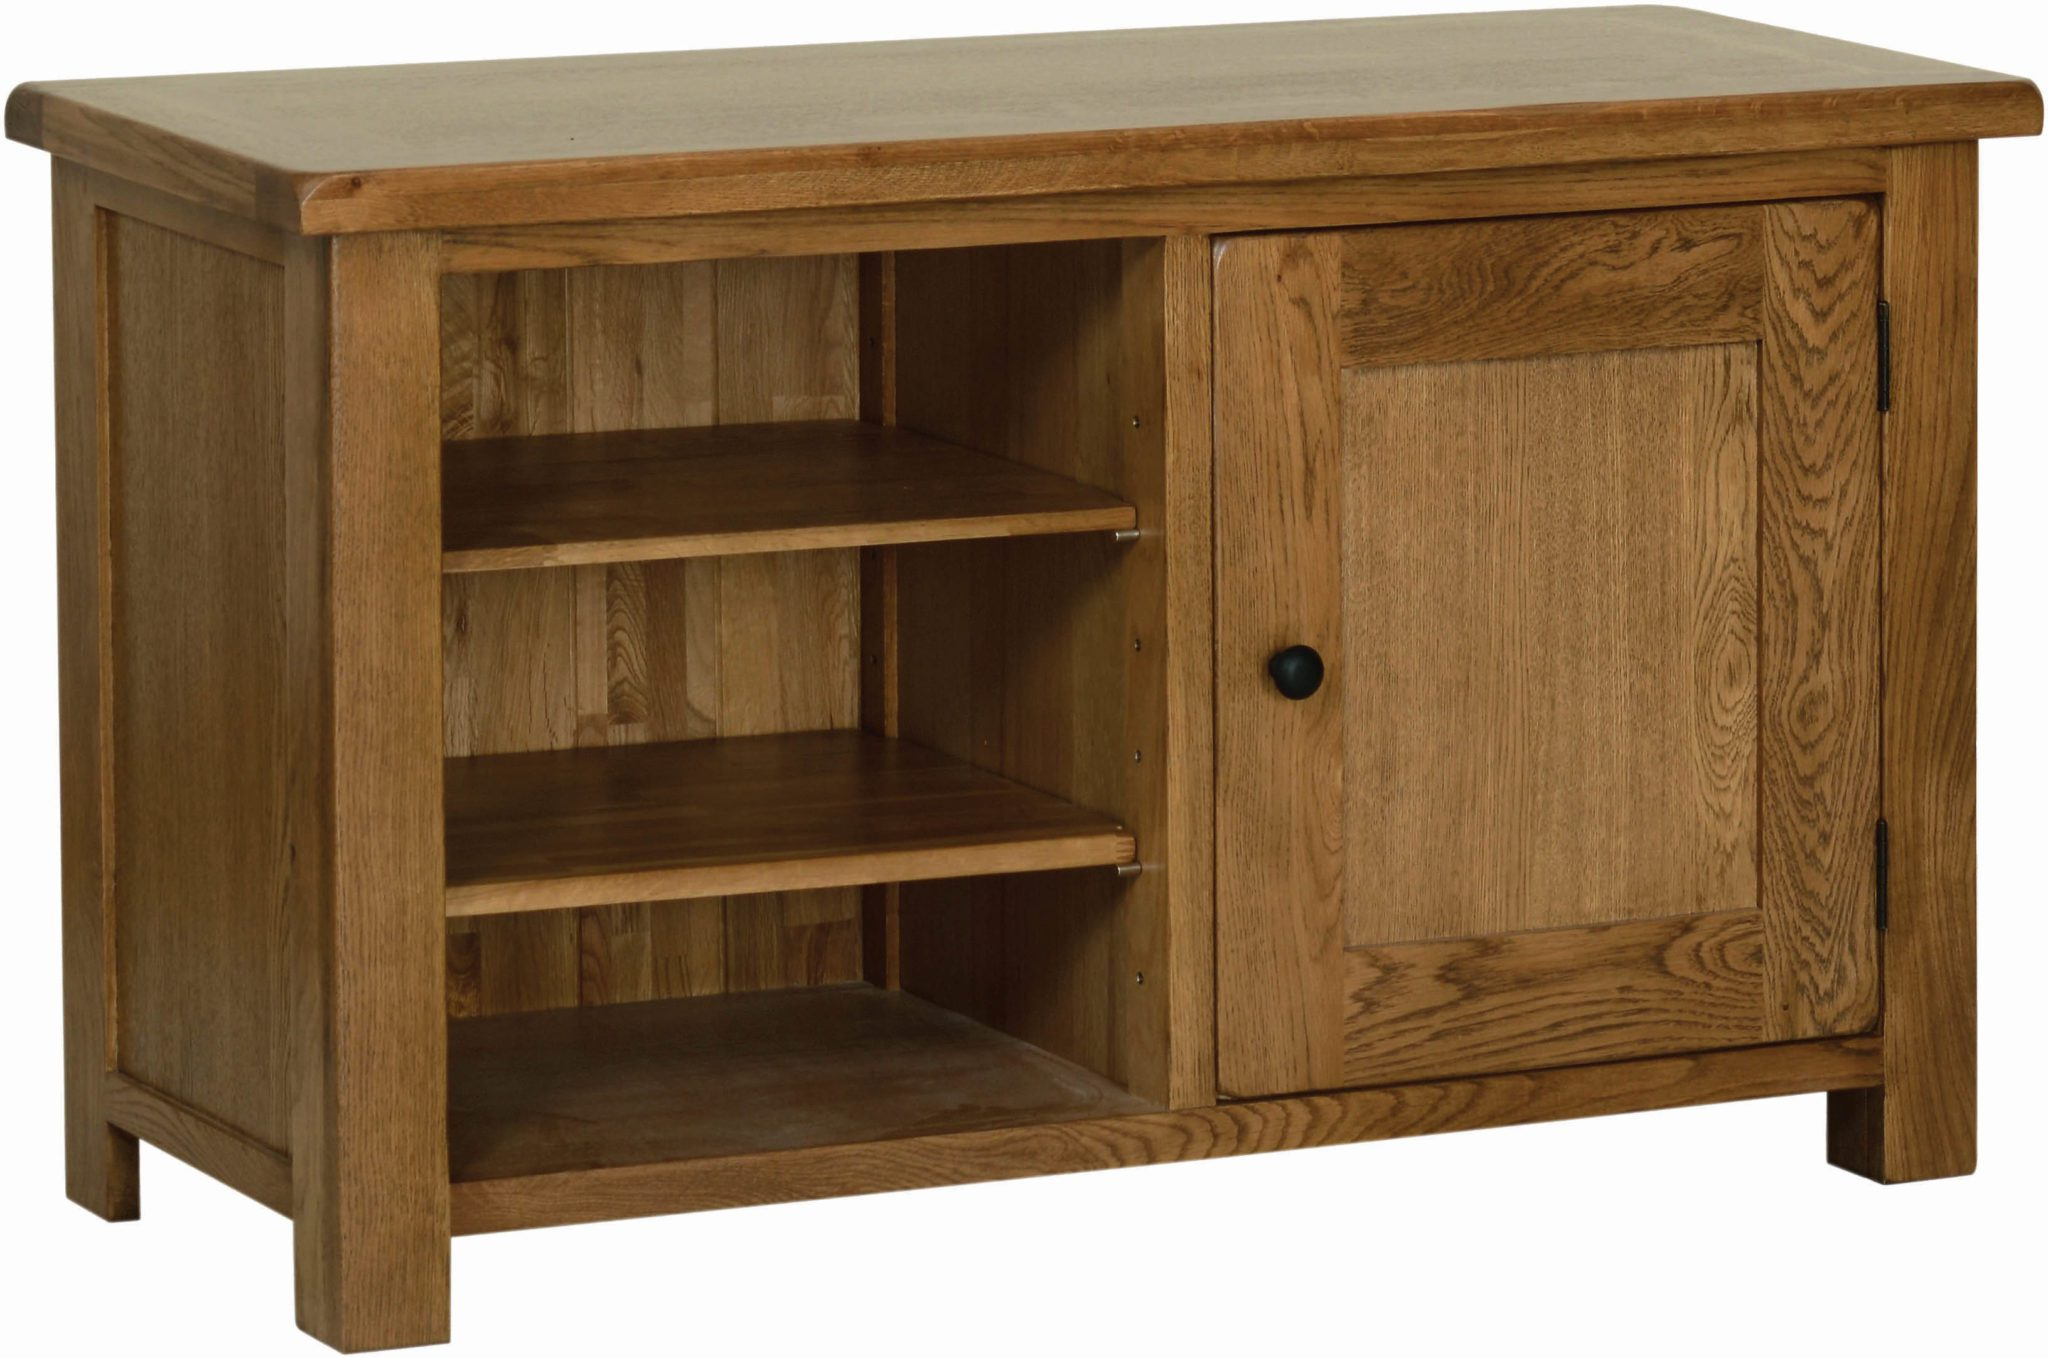 Sudbury Oak Standard TV Cabinet Rustic shaker style with rounded edges, 2 doors with rustic round knobs. 1 cupboard at the side with adjustable shelf within. 2 open adjustable shelves in centre. SRE20